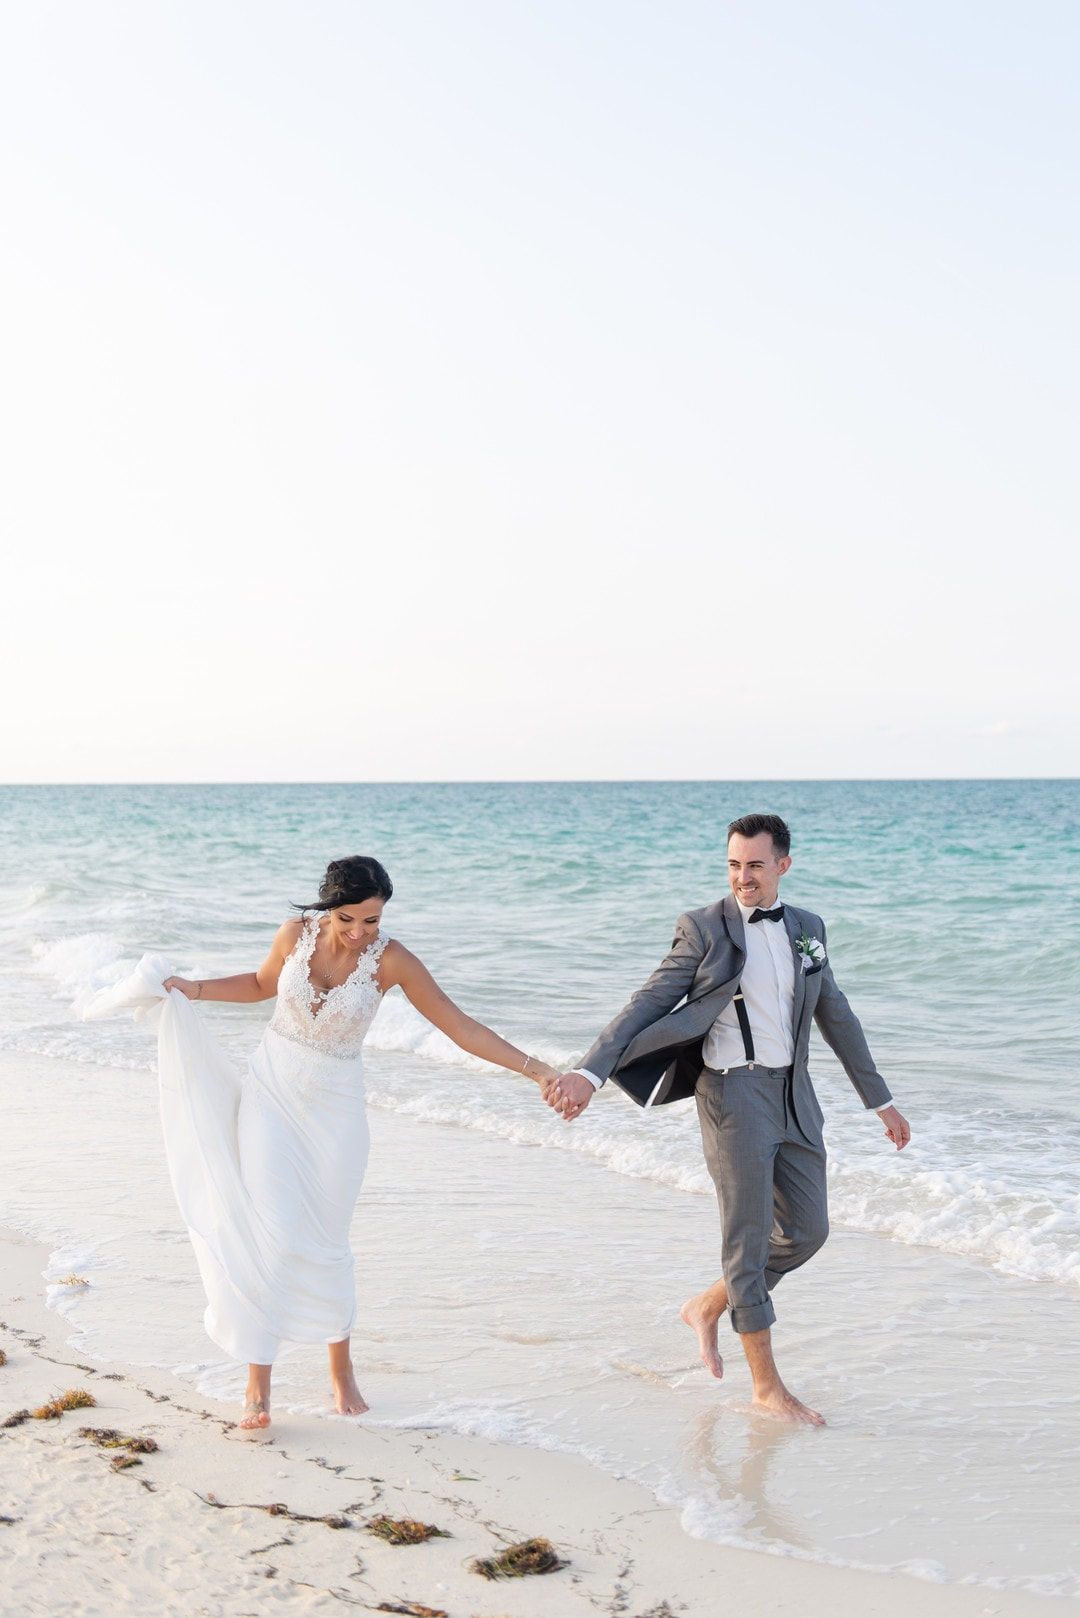 Amanda & Cam's Oceanside Wedding In Cayo Coco, Cuba, Photography by Life is Beautiful Photography for Destination Wedding Blog Adriana Weddings